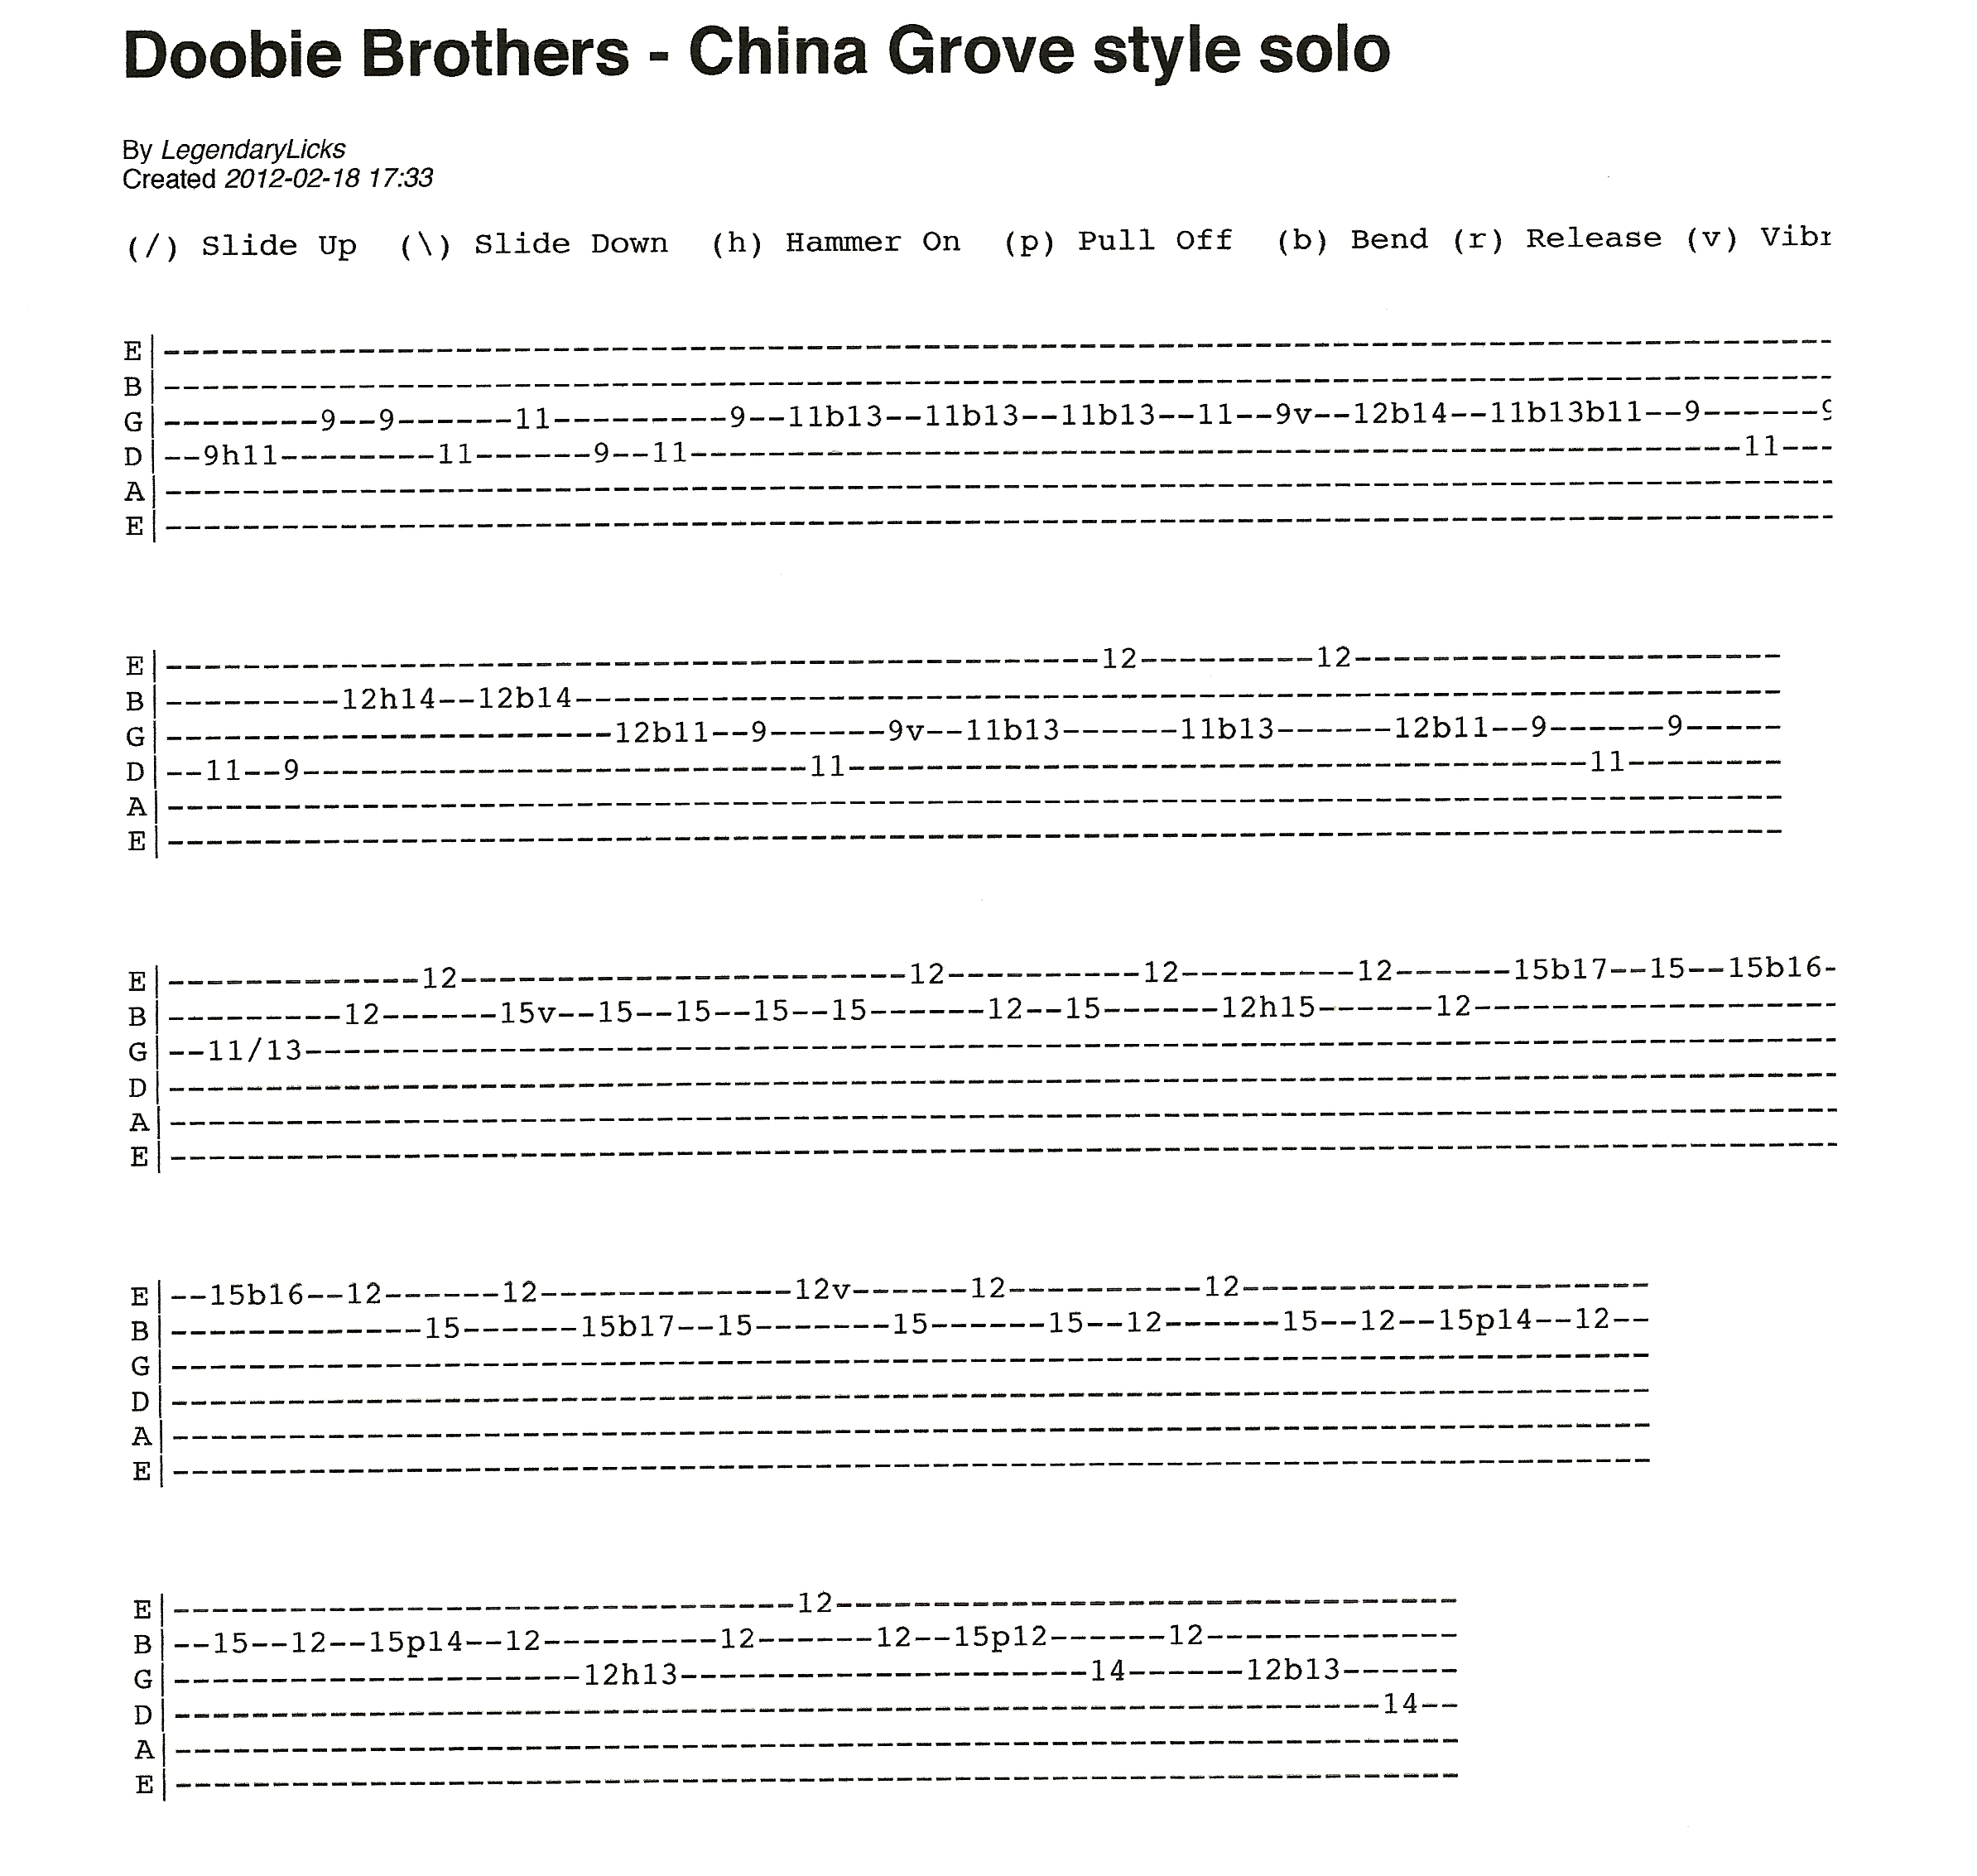 Doobie brothers guitar chords images guitar chords examples doobie brothers china grove style solo with tablature rick doobie brothers fatherlandz images hexwebz Gallery